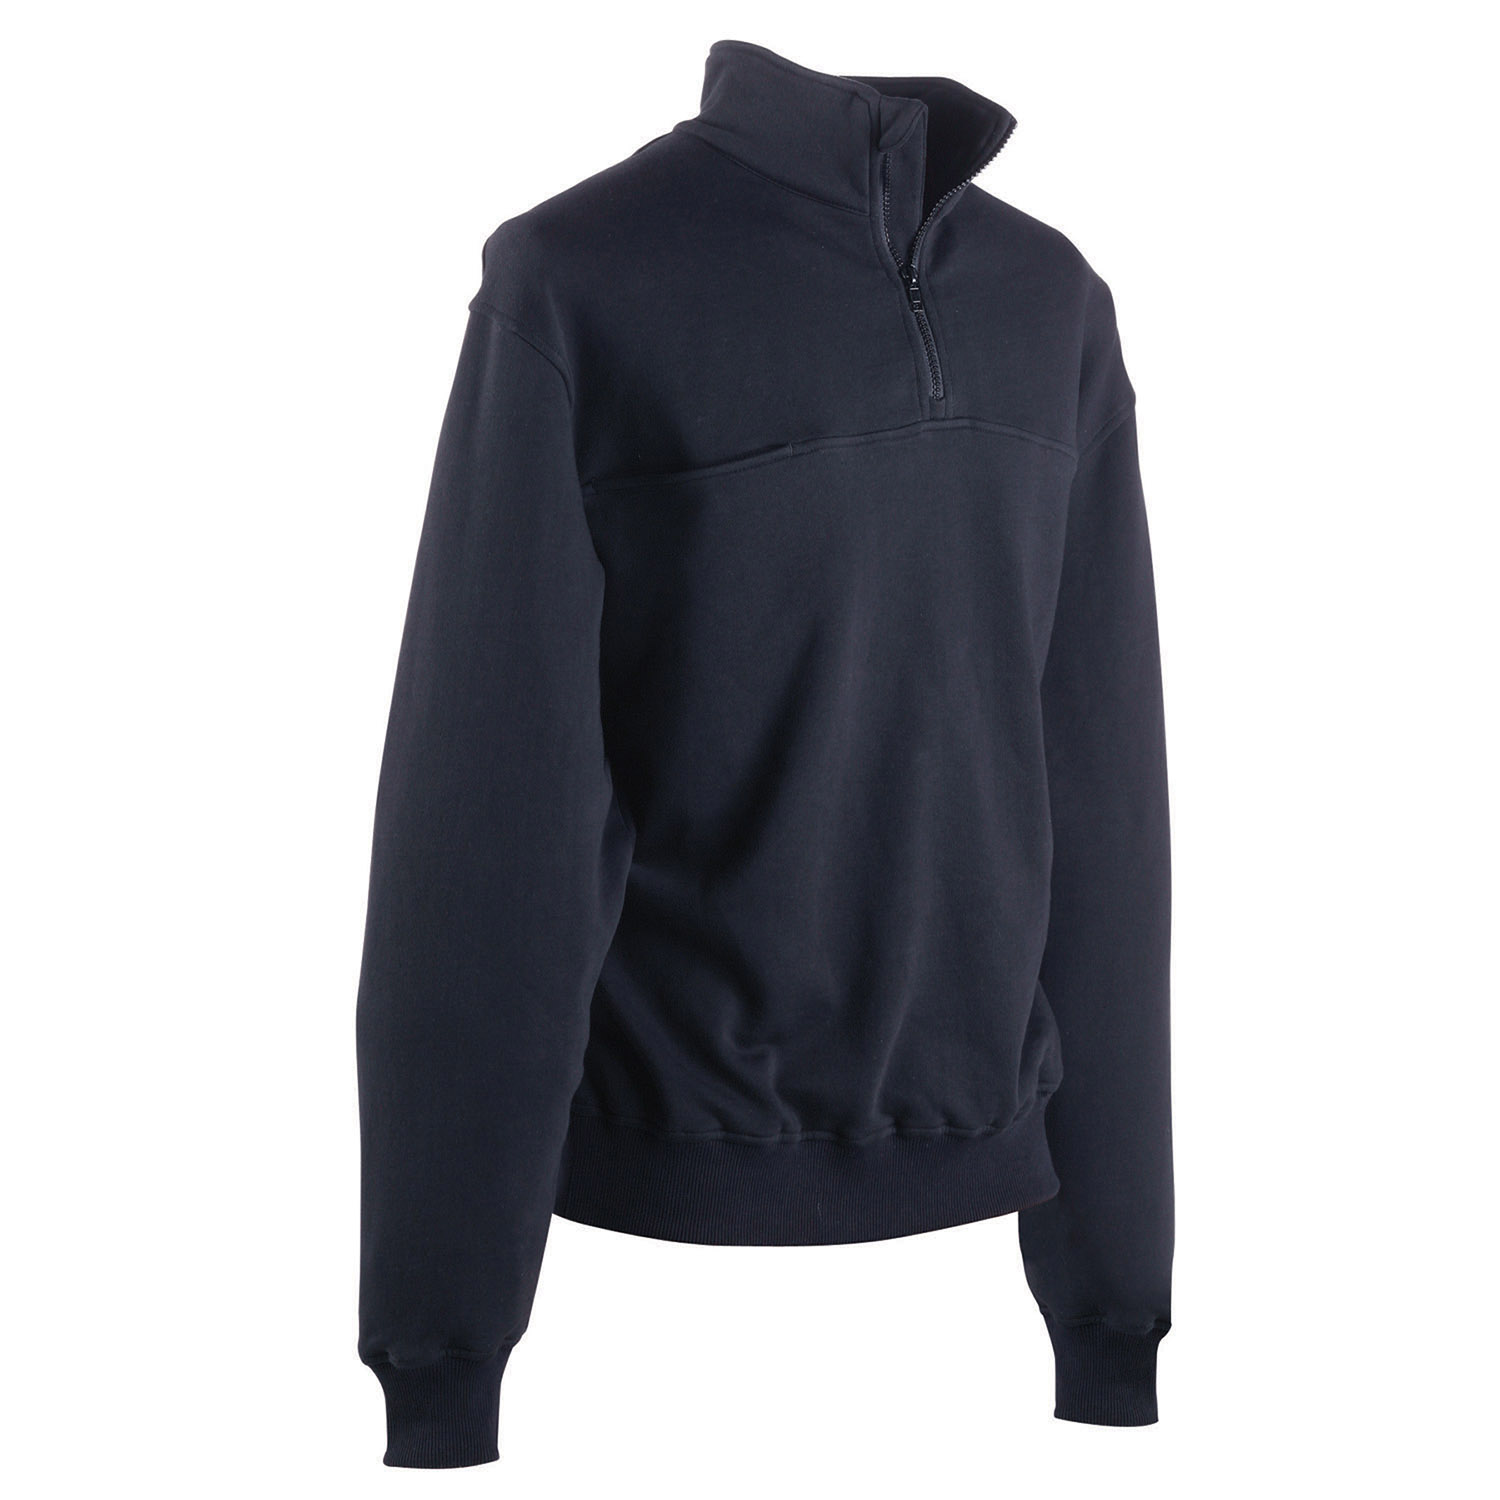 Galls Firefighter Quarter Zip Workshirt with Stand Up Collar